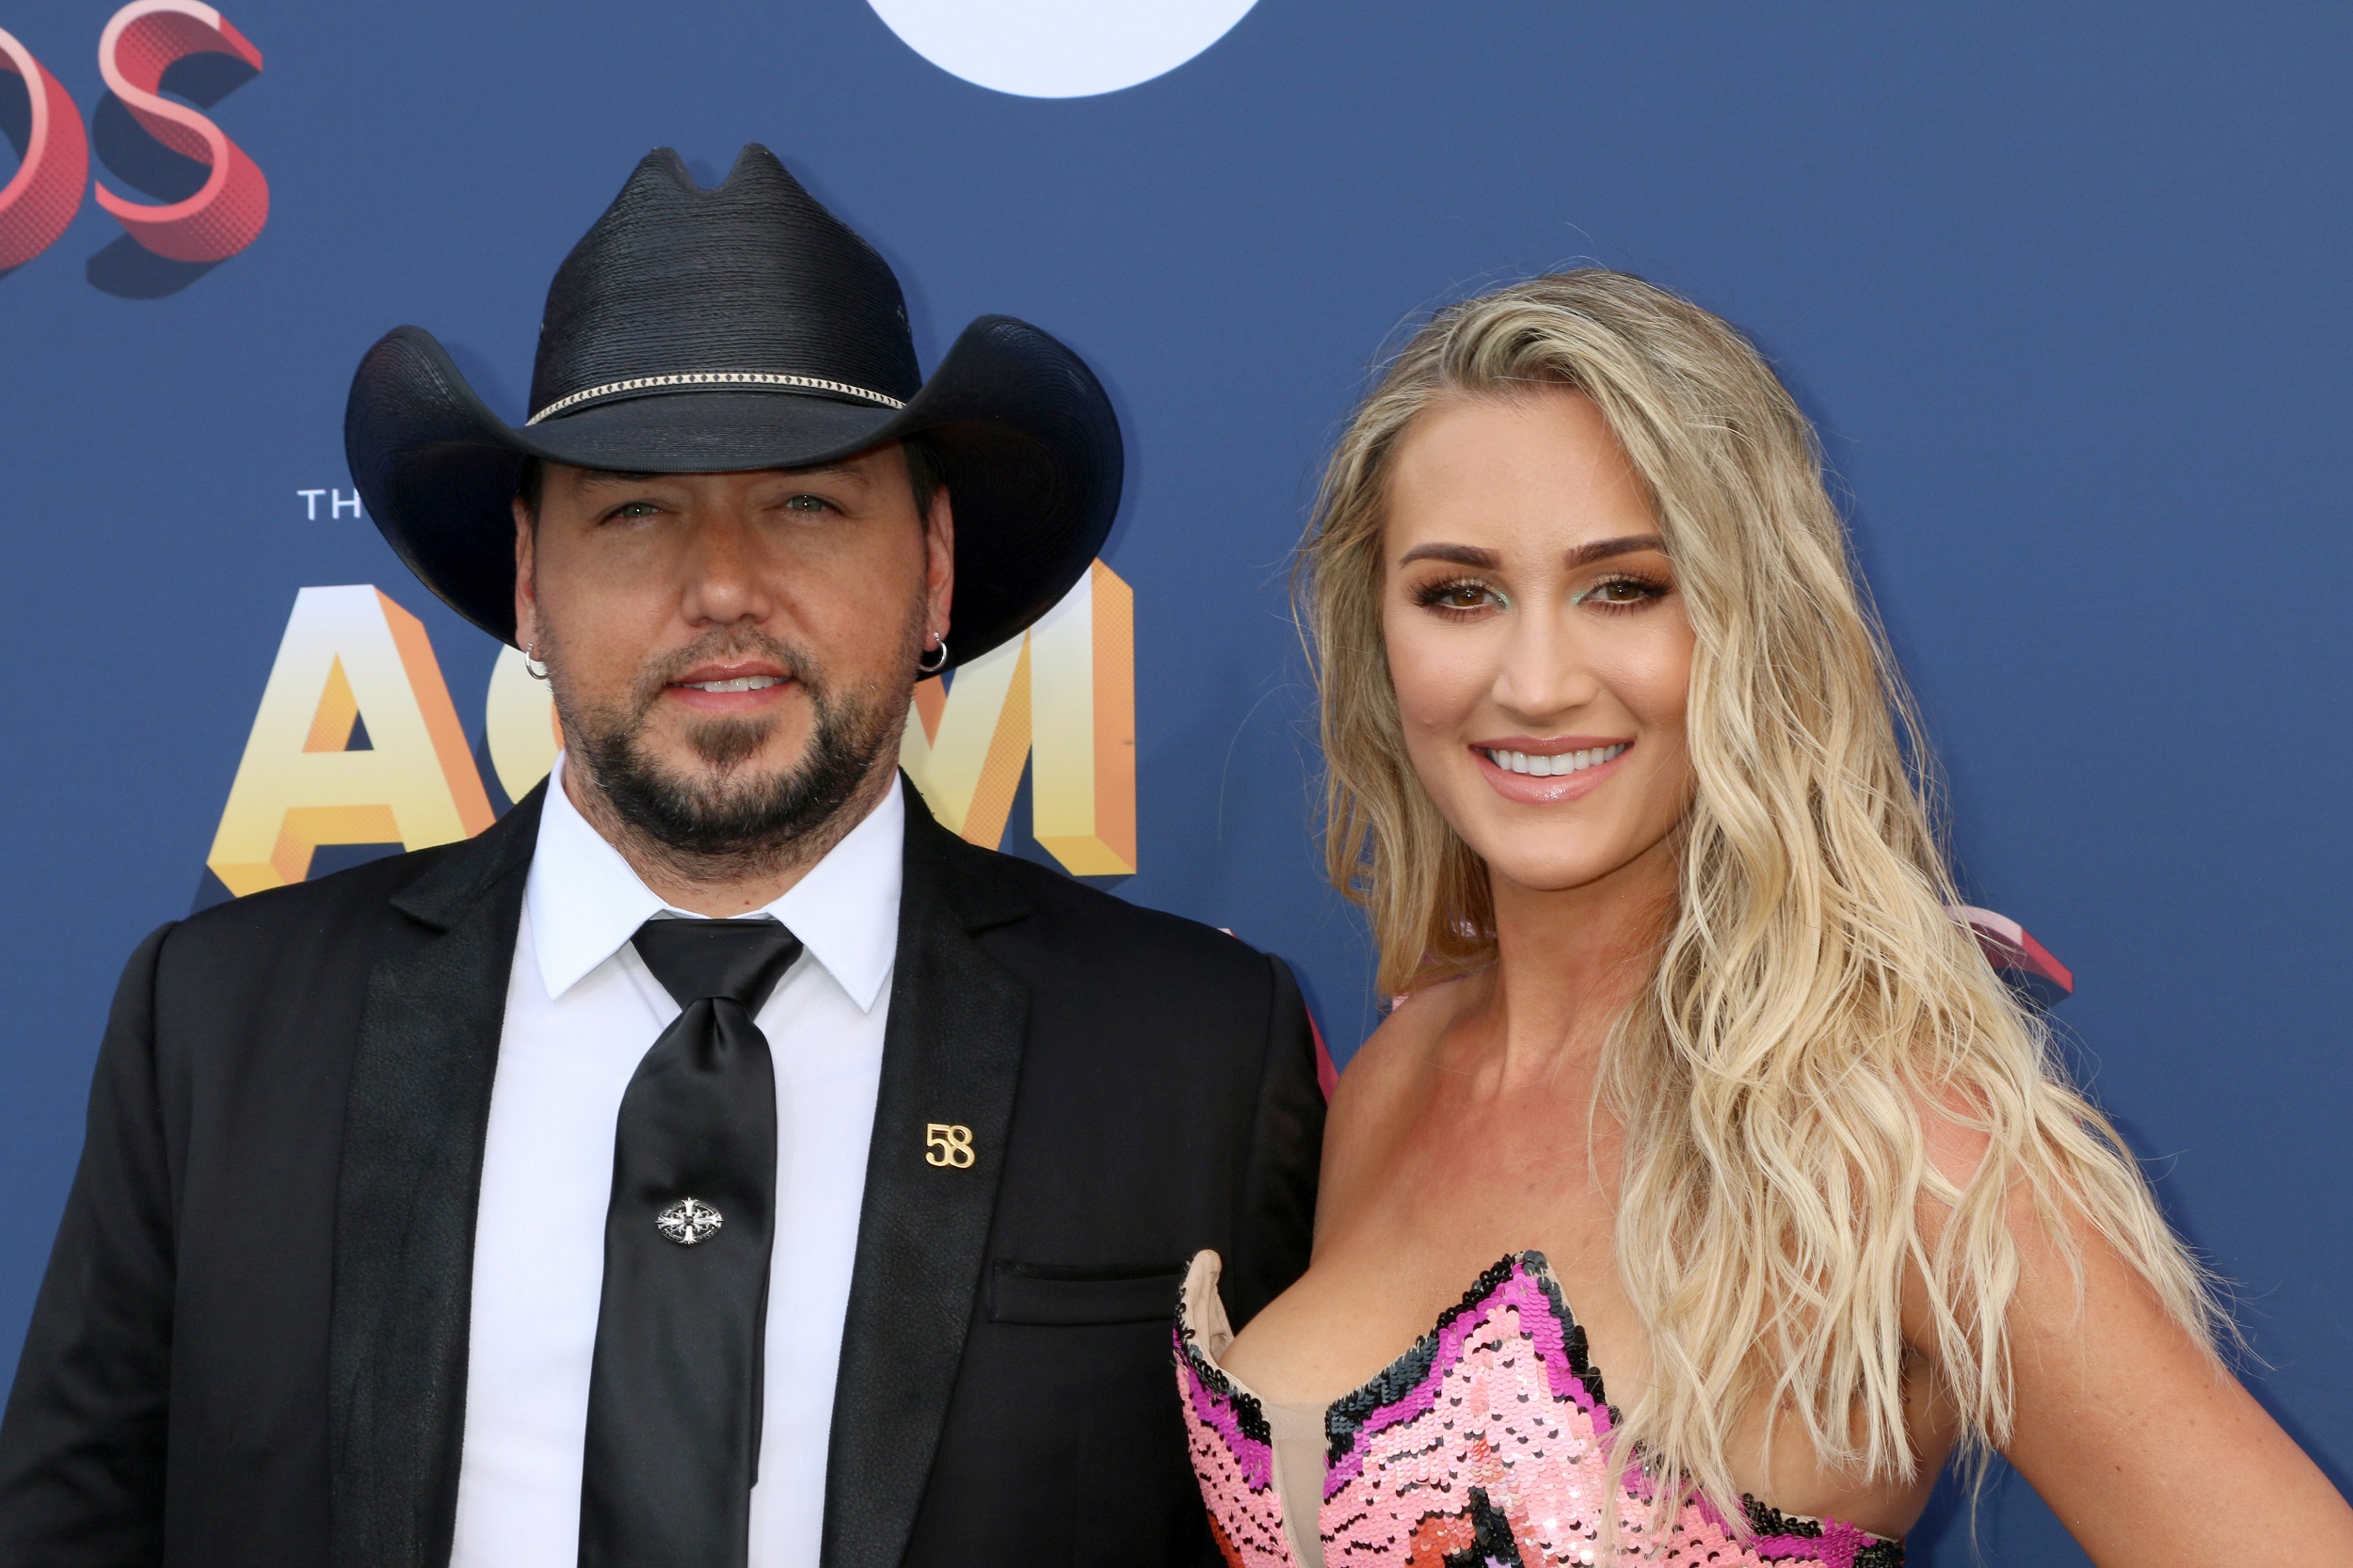 Jason Aldean and Wife Brittany Kerr Aldean